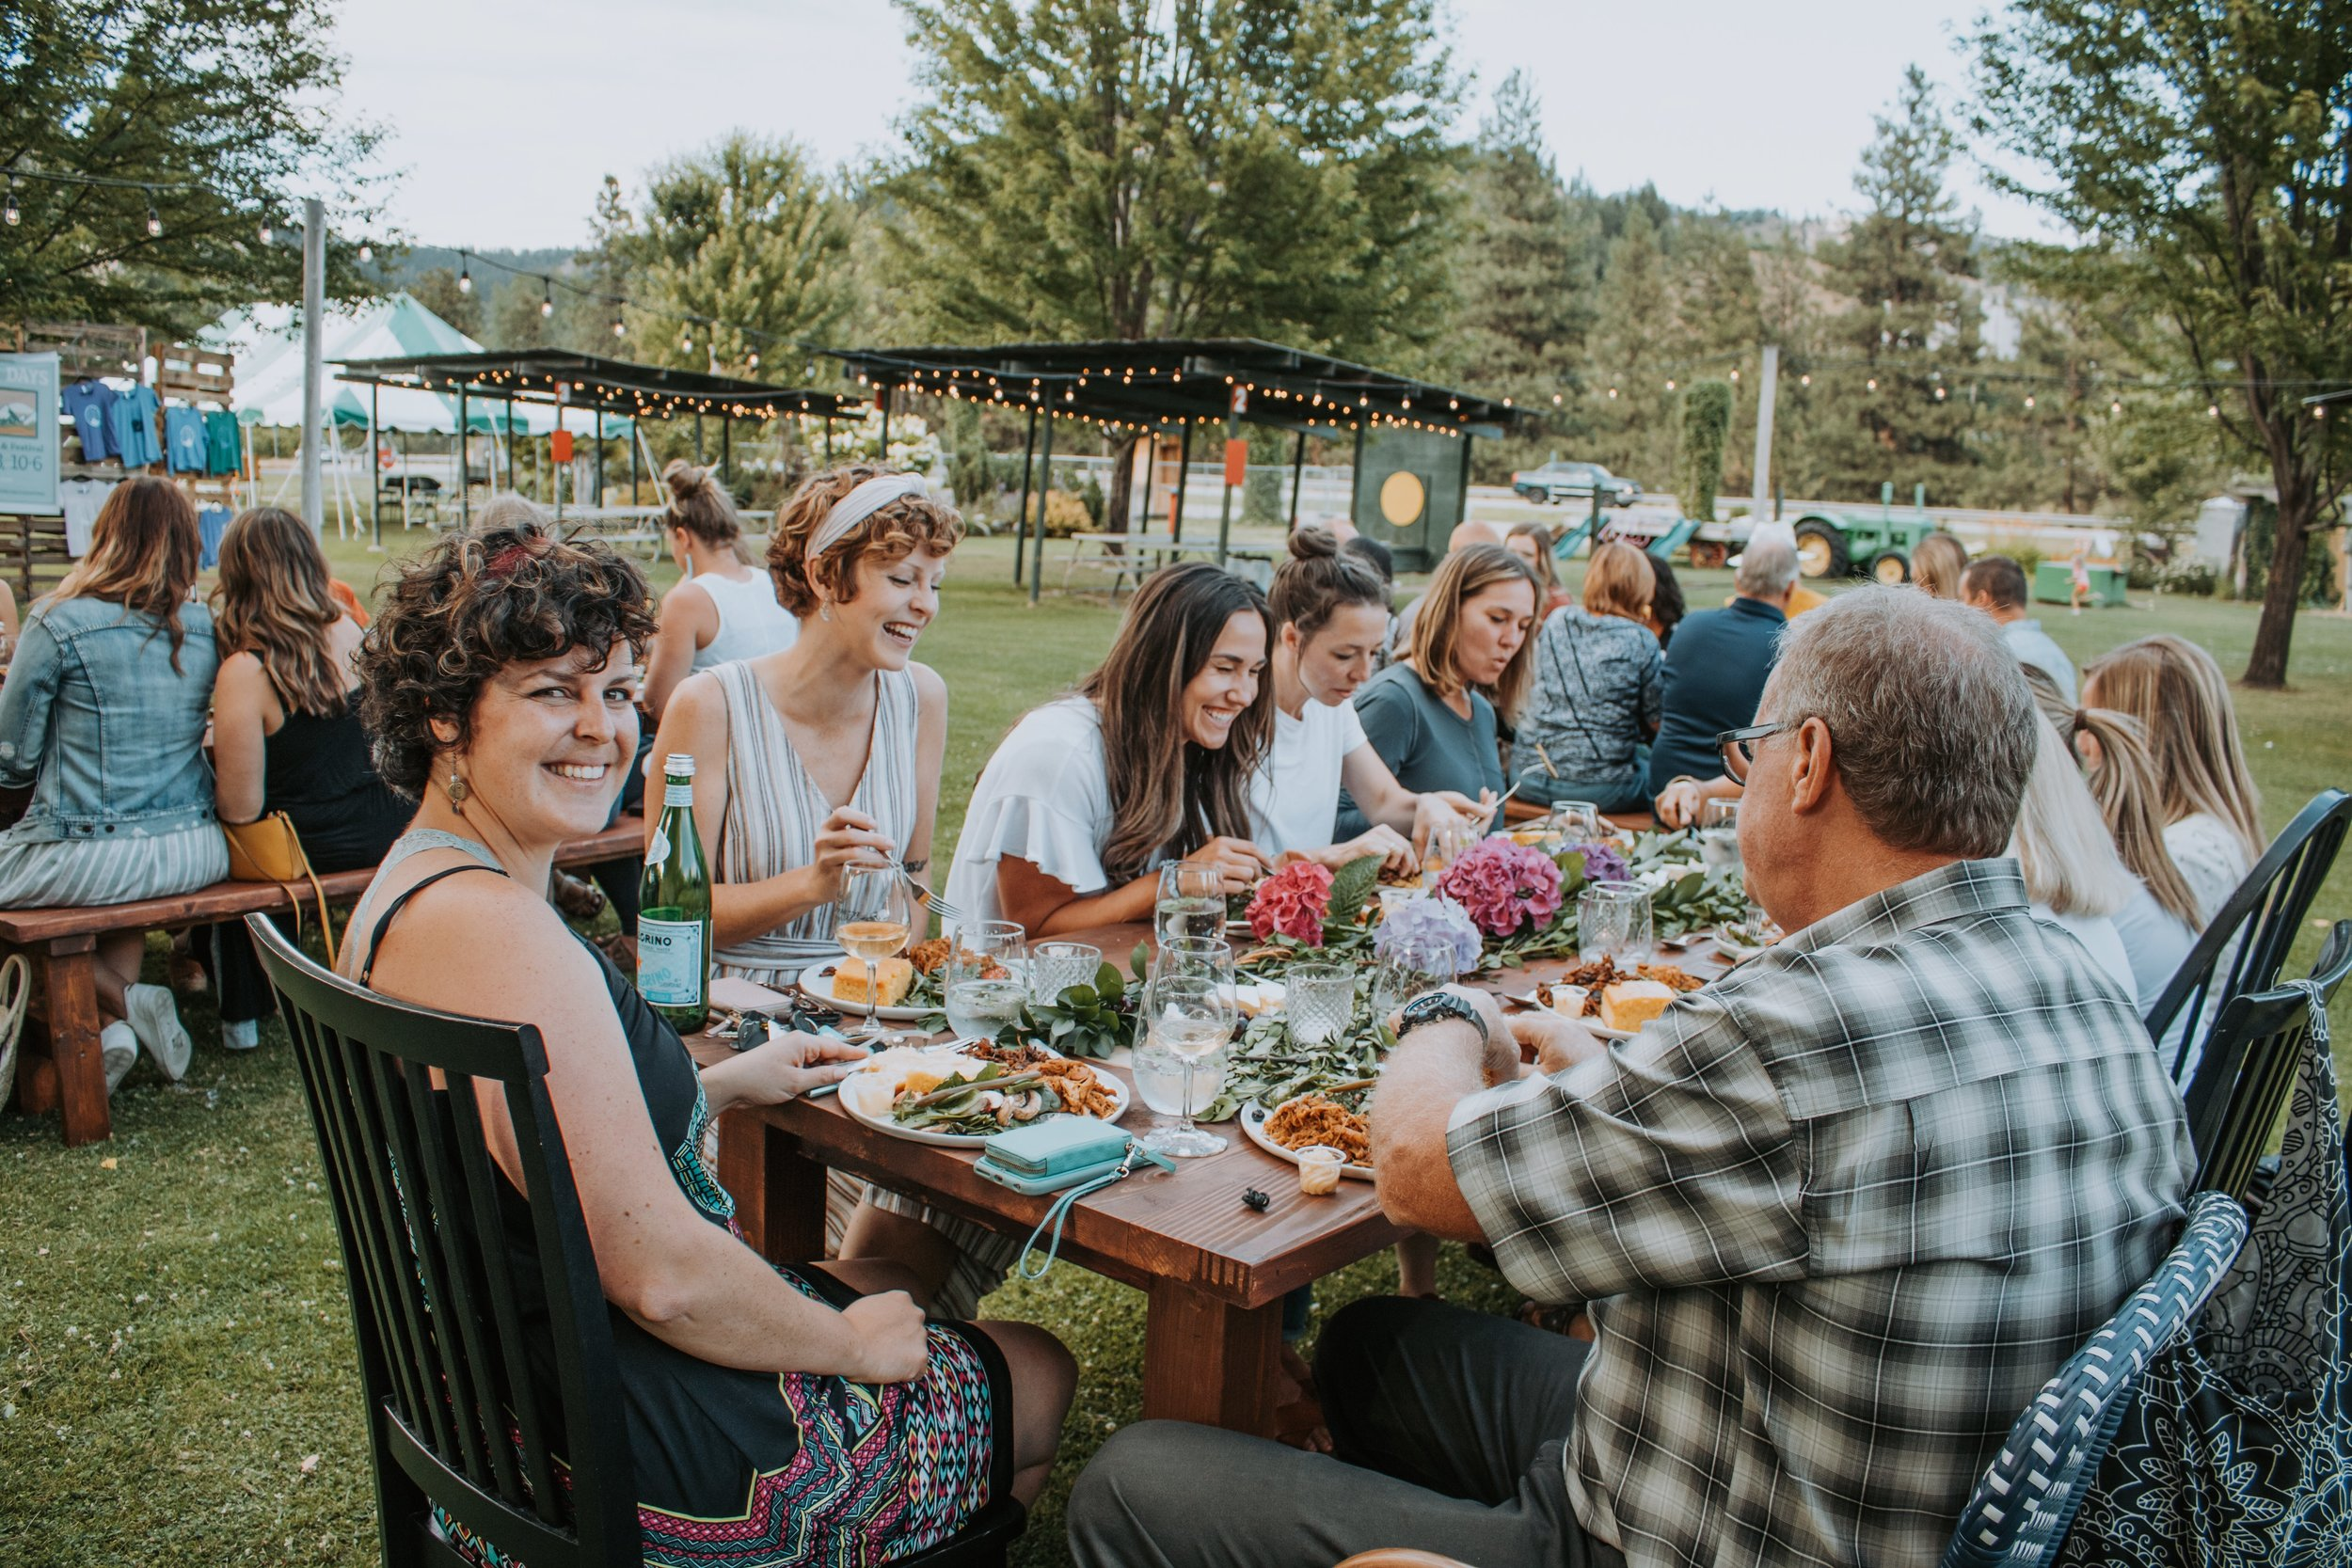 The Summer Nights Dinner sold out for an evening of fun with She Wakes musical duo, food from Sweetwood BBQ and paired with drinks from Bella Terrazza.